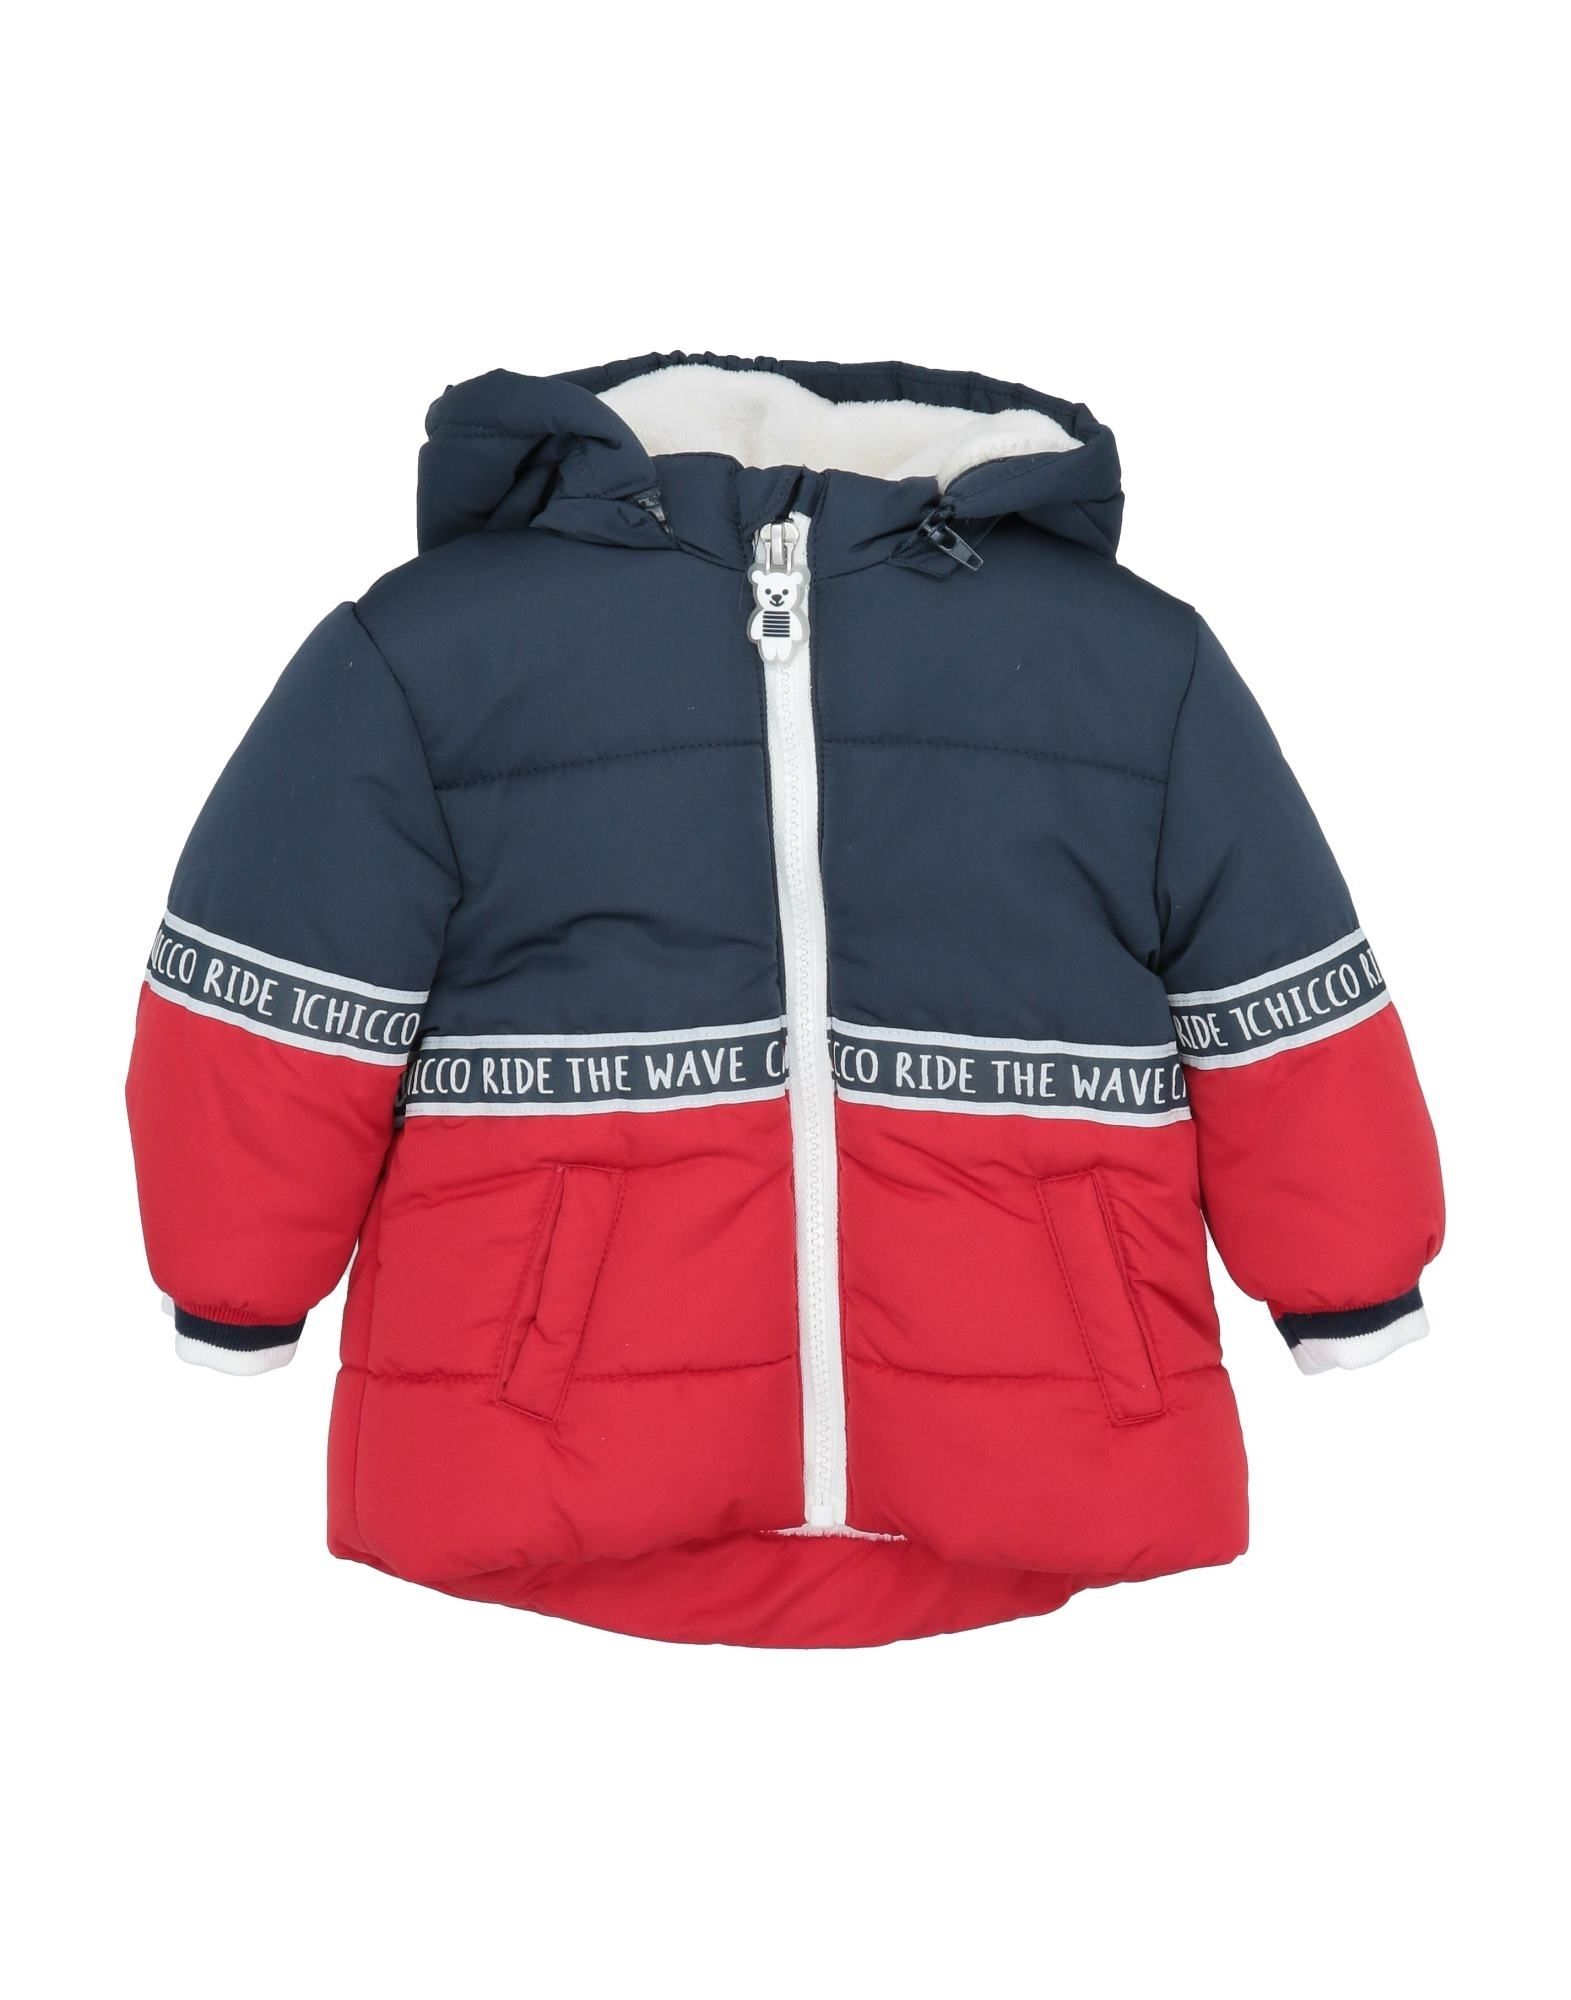 CHICCO Synthetic Down Jackets - Item 41990265